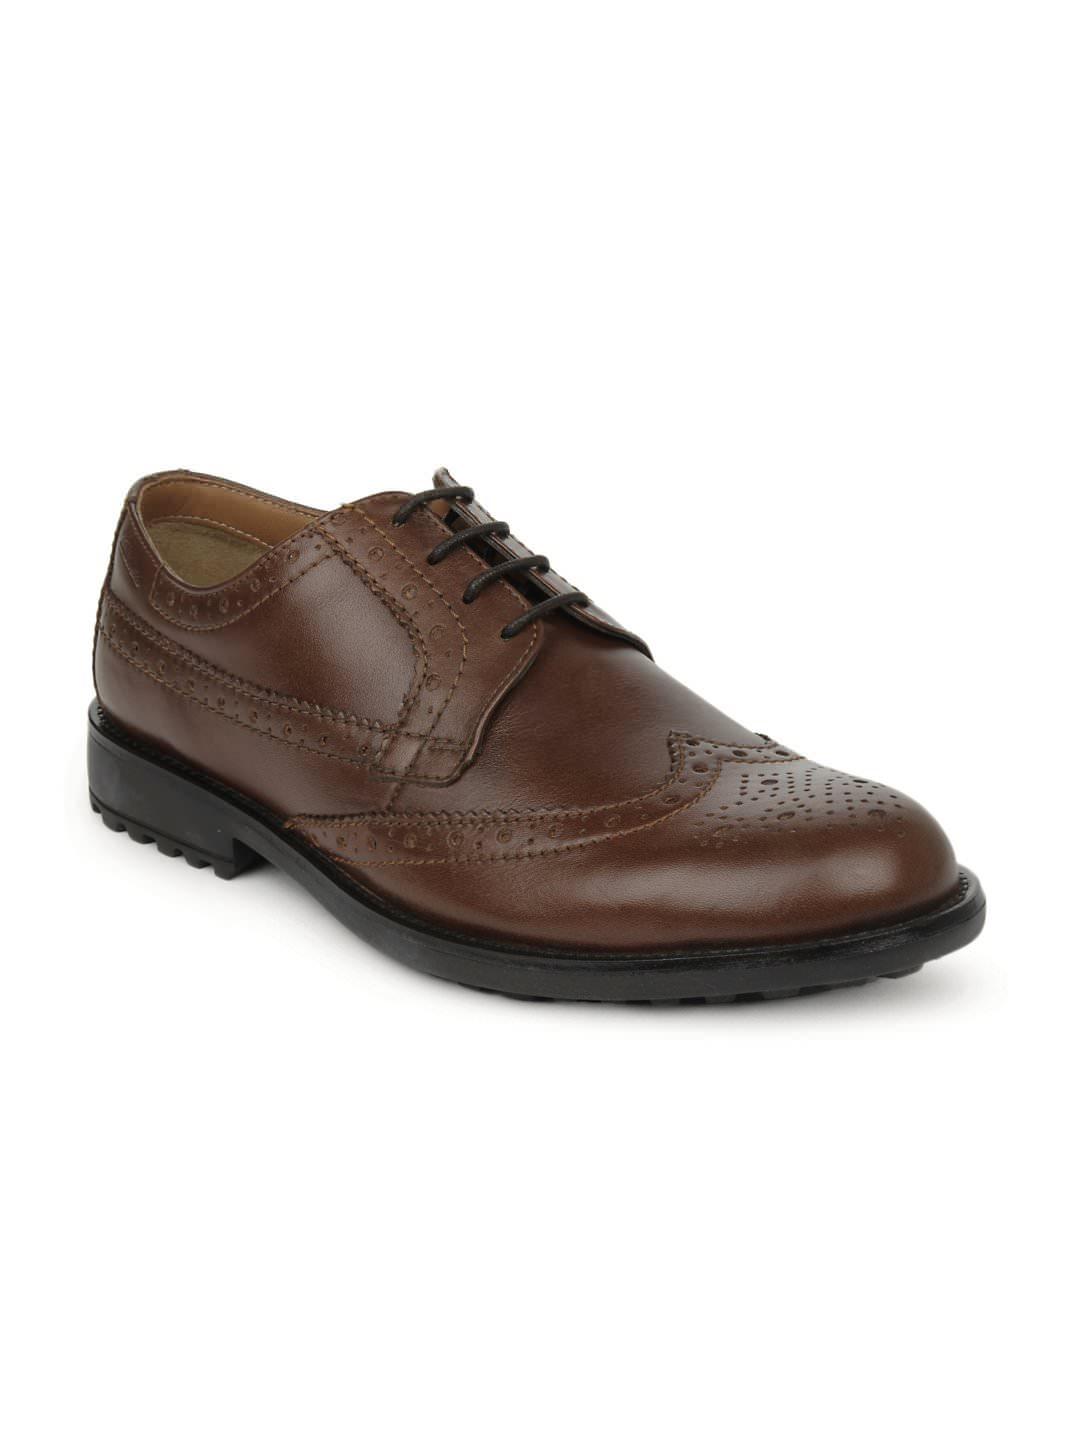 Buy Clarks Cognac Semi Formal Shoes at Rs.3749